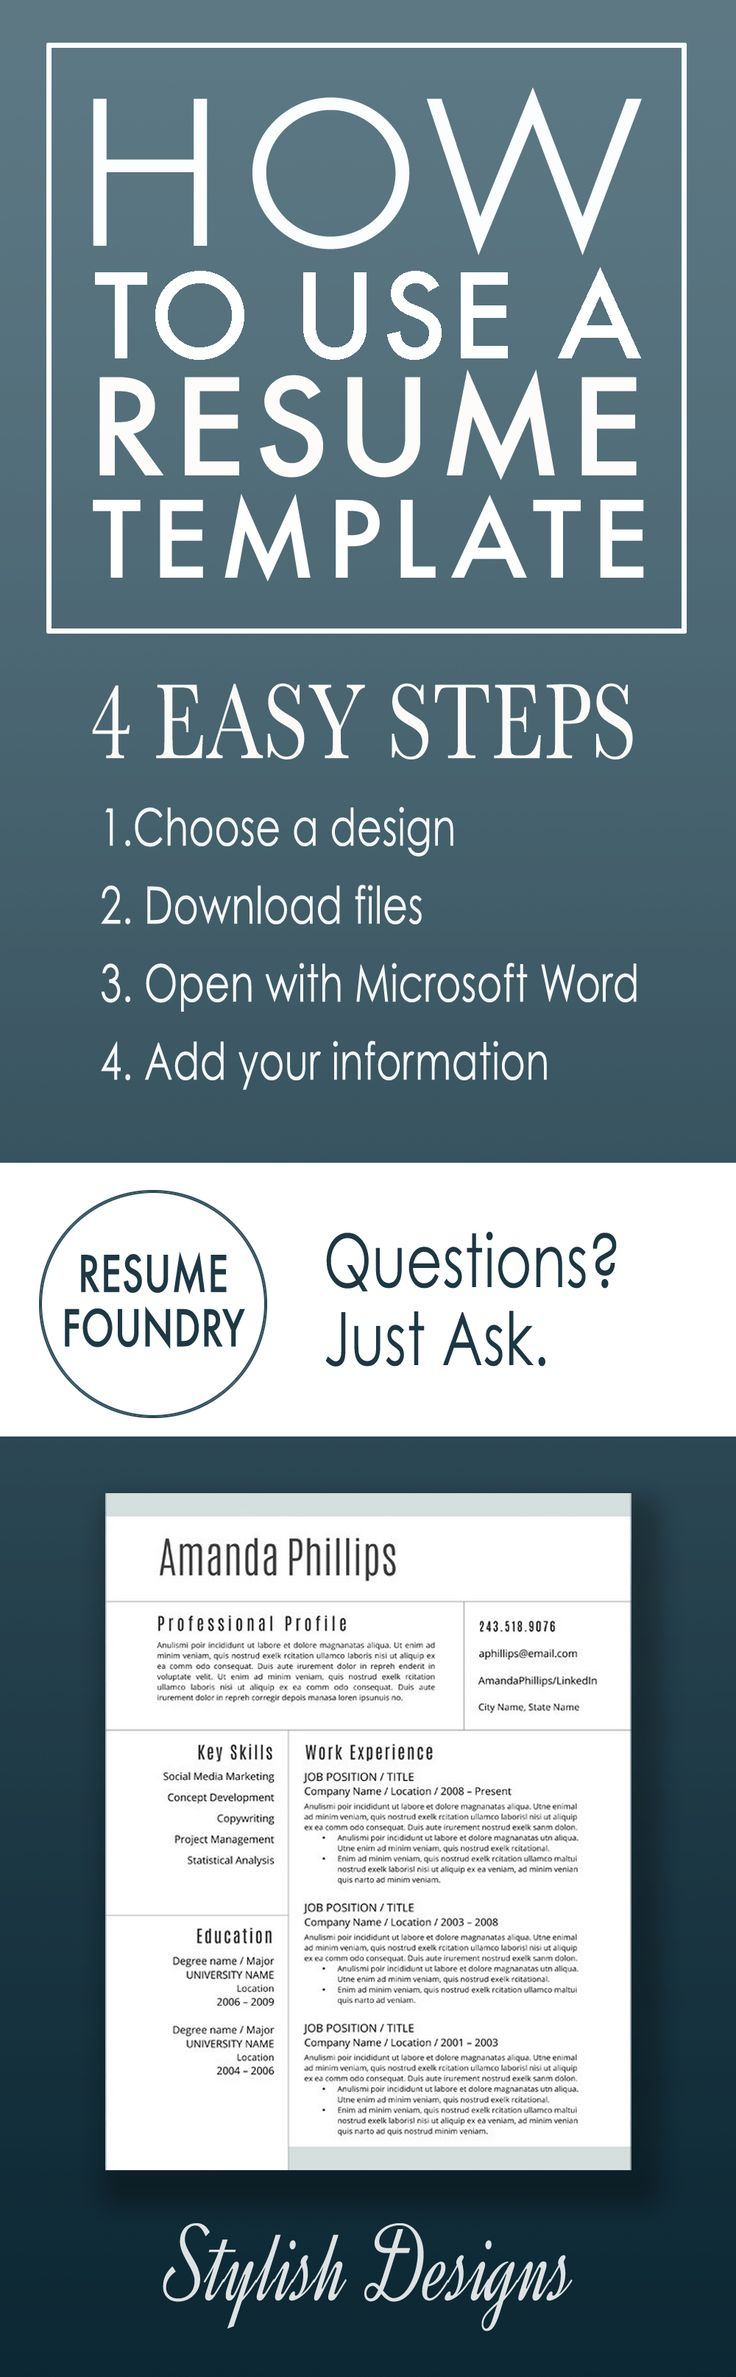 131 Best Resume Templates - Etsy Images On Pinterest | Cover Letter